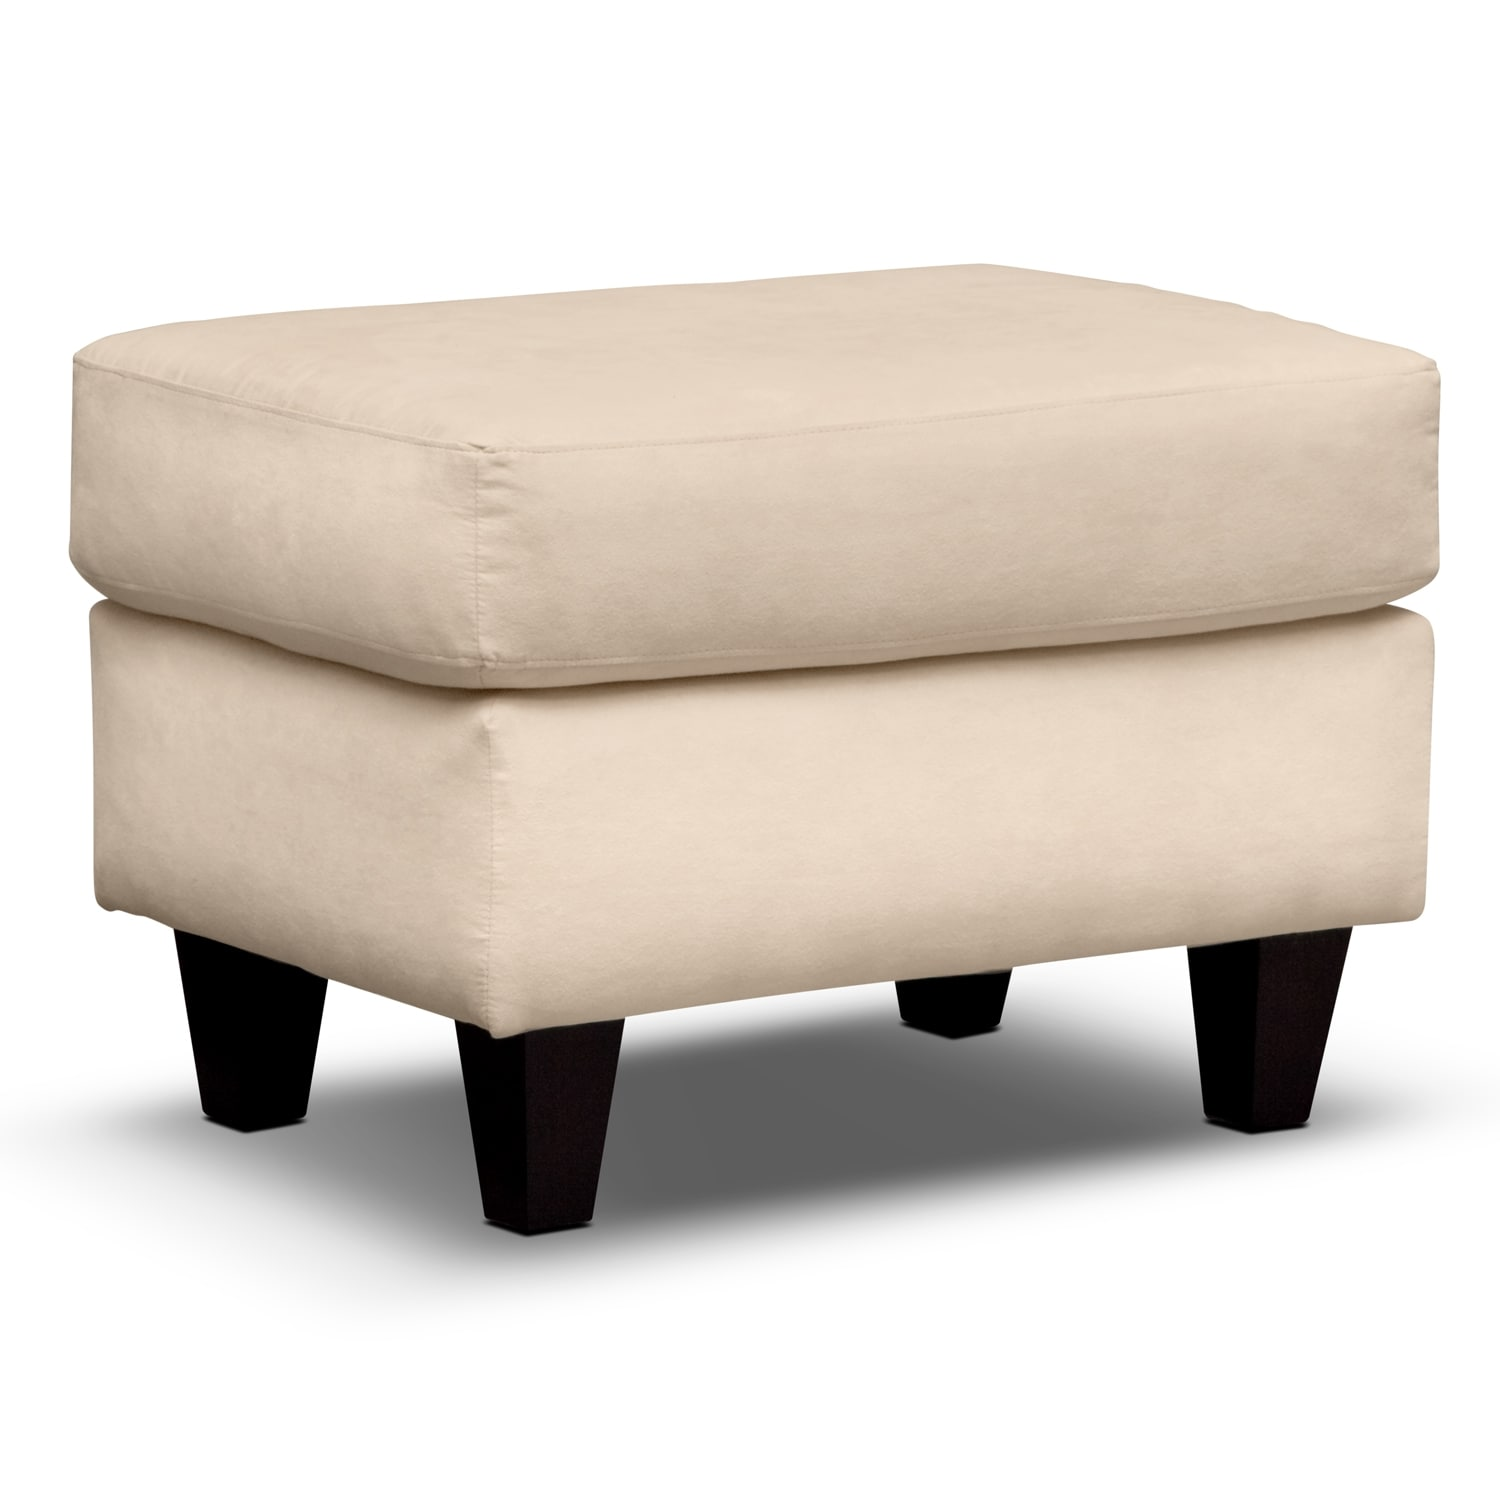 Living Room Furniture - West Village Ottoman - Cream